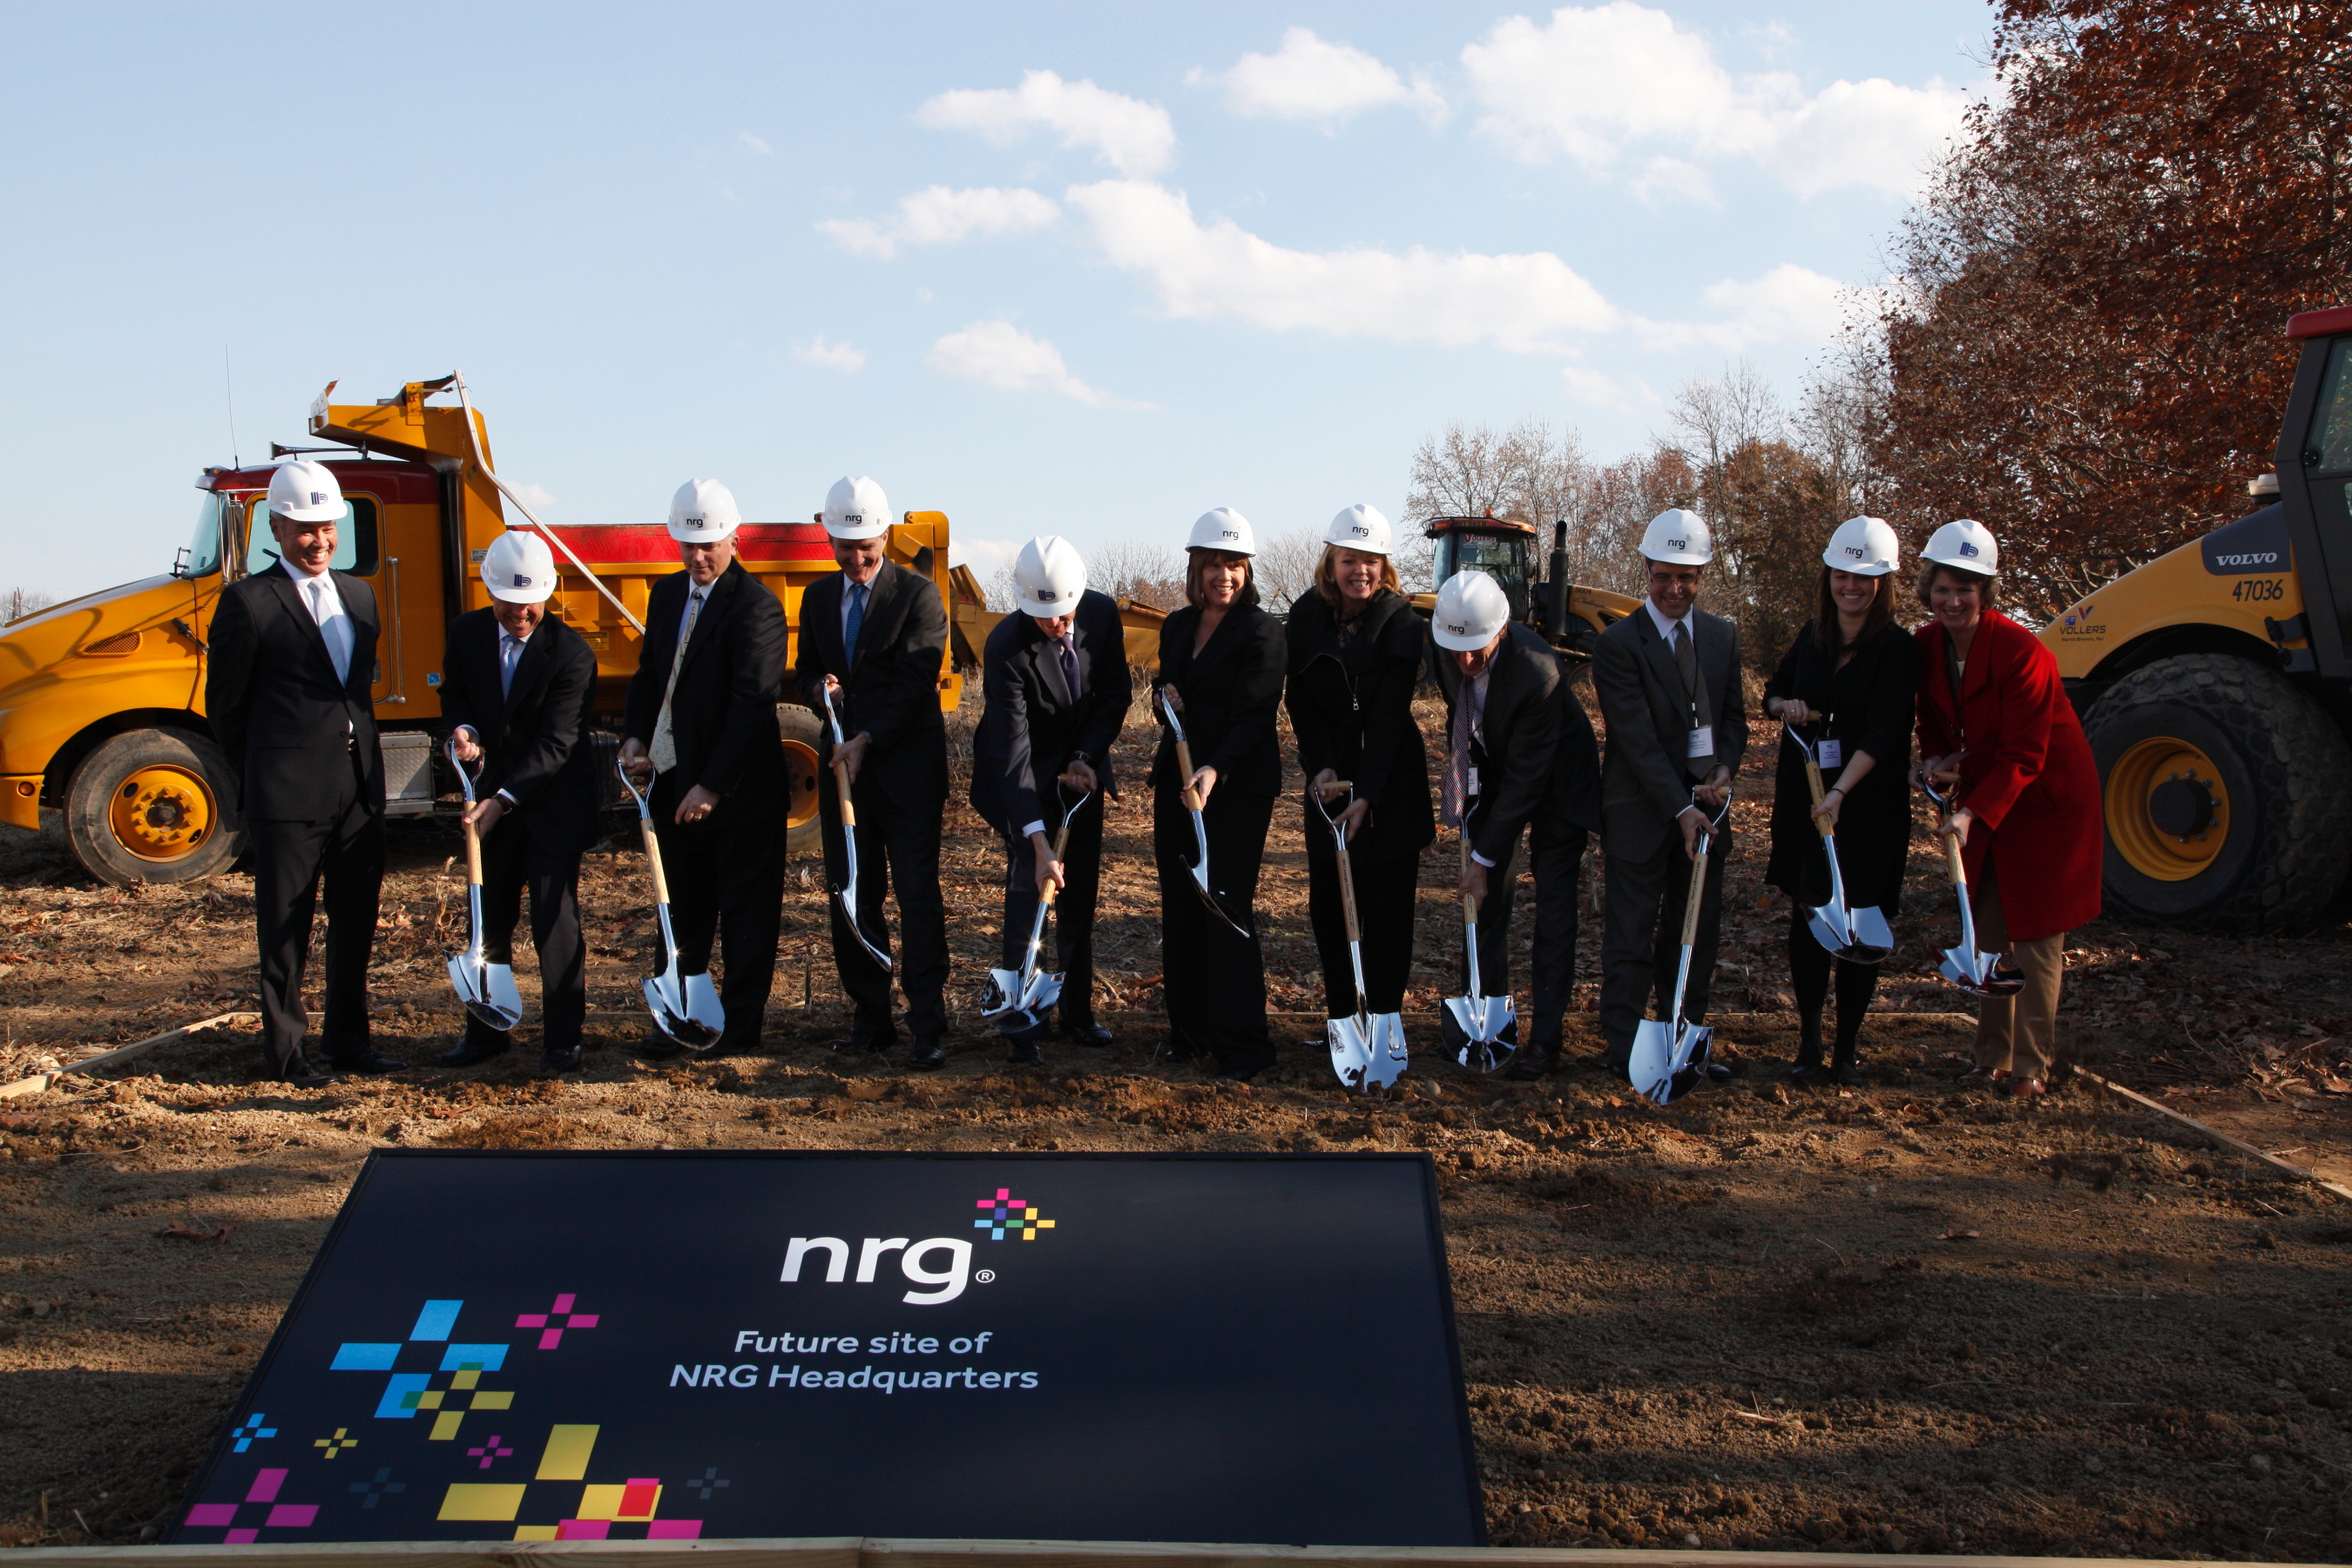 NRG Energy Picture